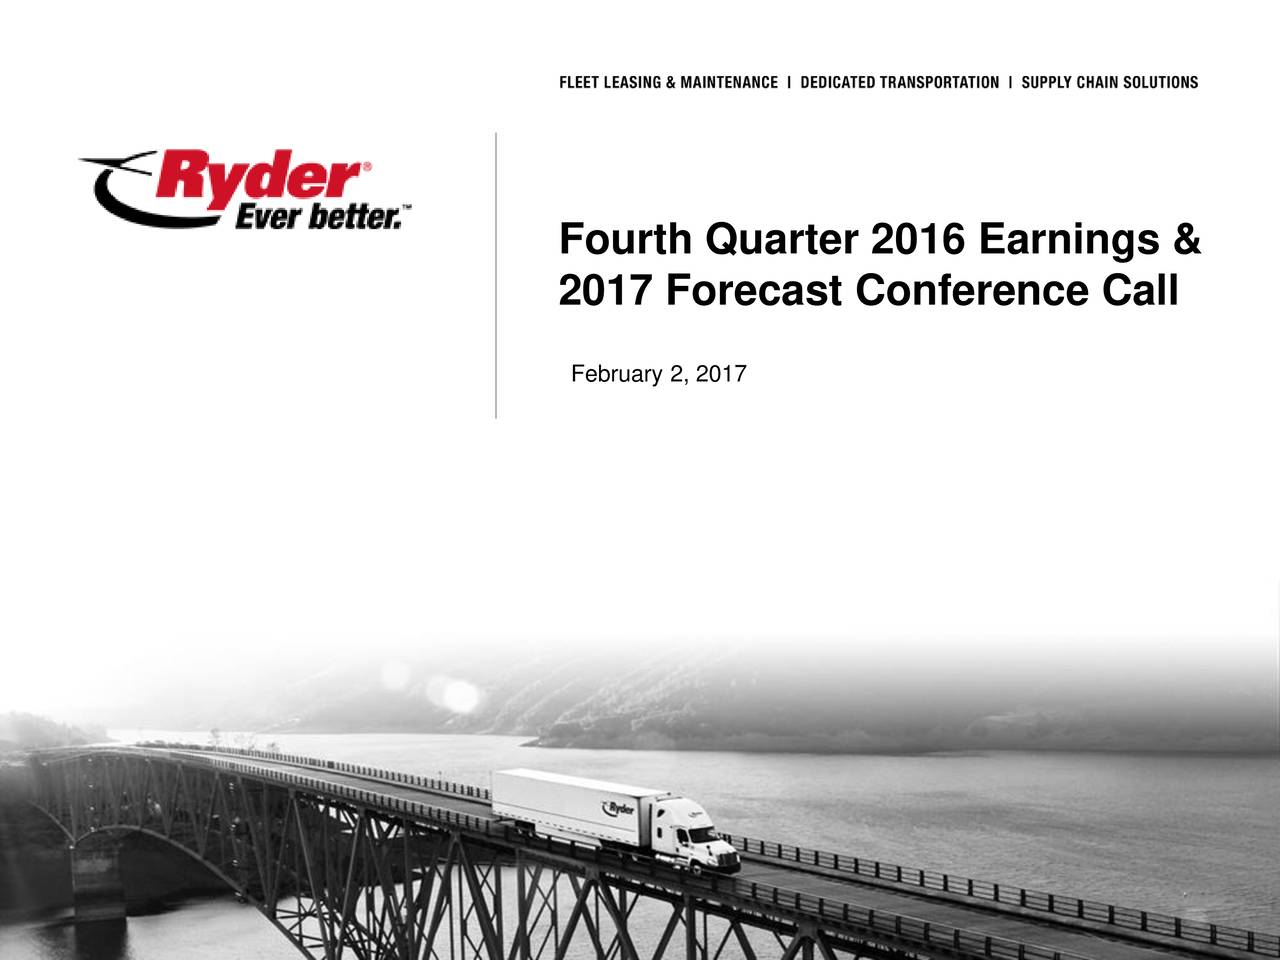 2017 Forecast Conference Call February 2, 2017 All Rights Reserved.Inc.